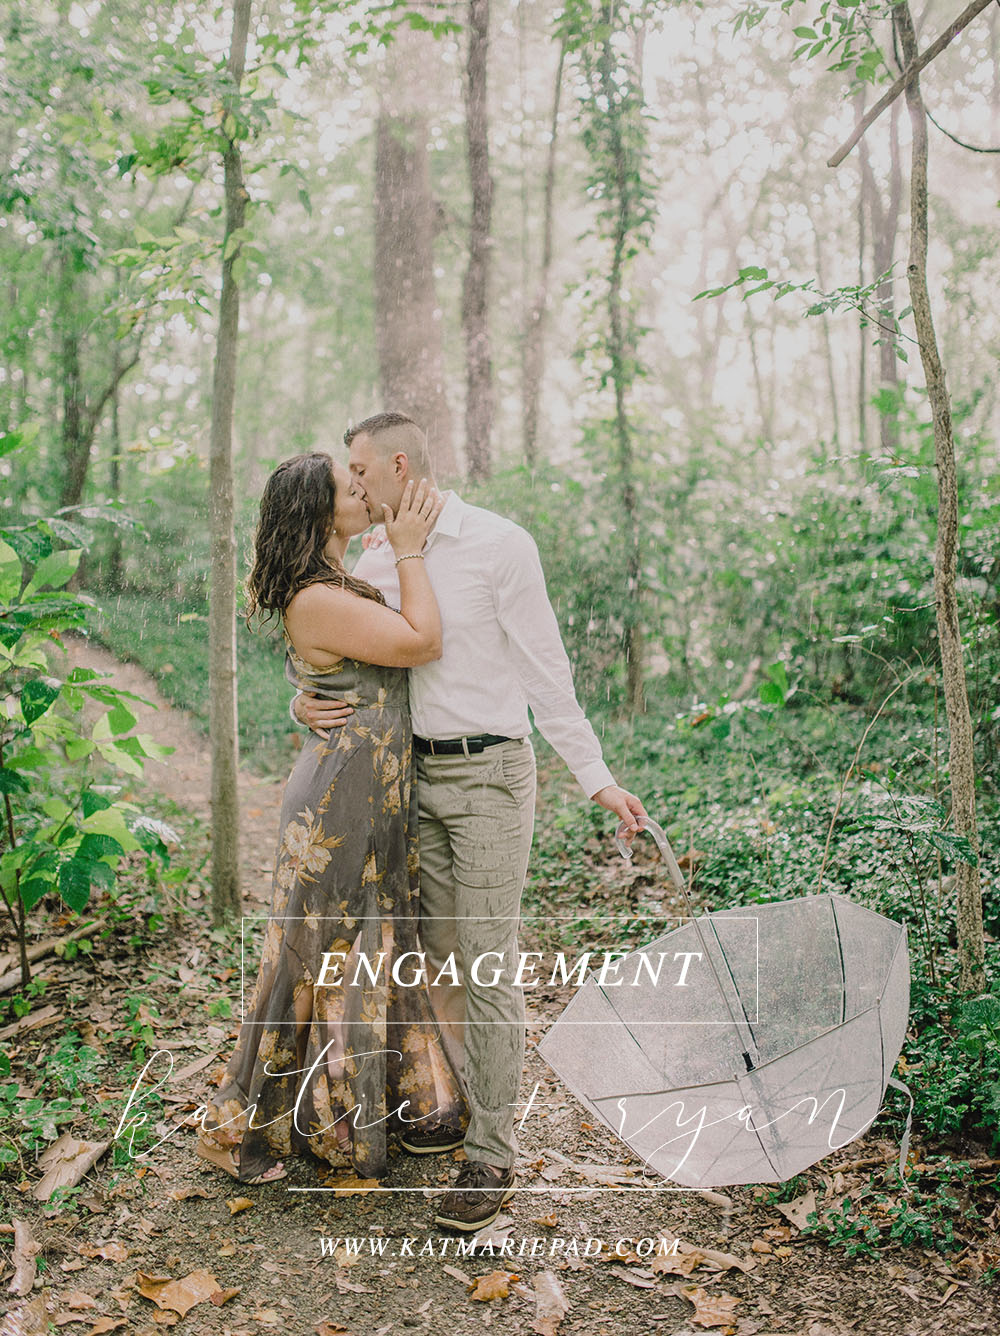 Kaitie + Joseph | A Romantic Engagement with Rain Forest Vibes in Carmel, IN | Indianapolis Elopement & Destination Wedding Photographers